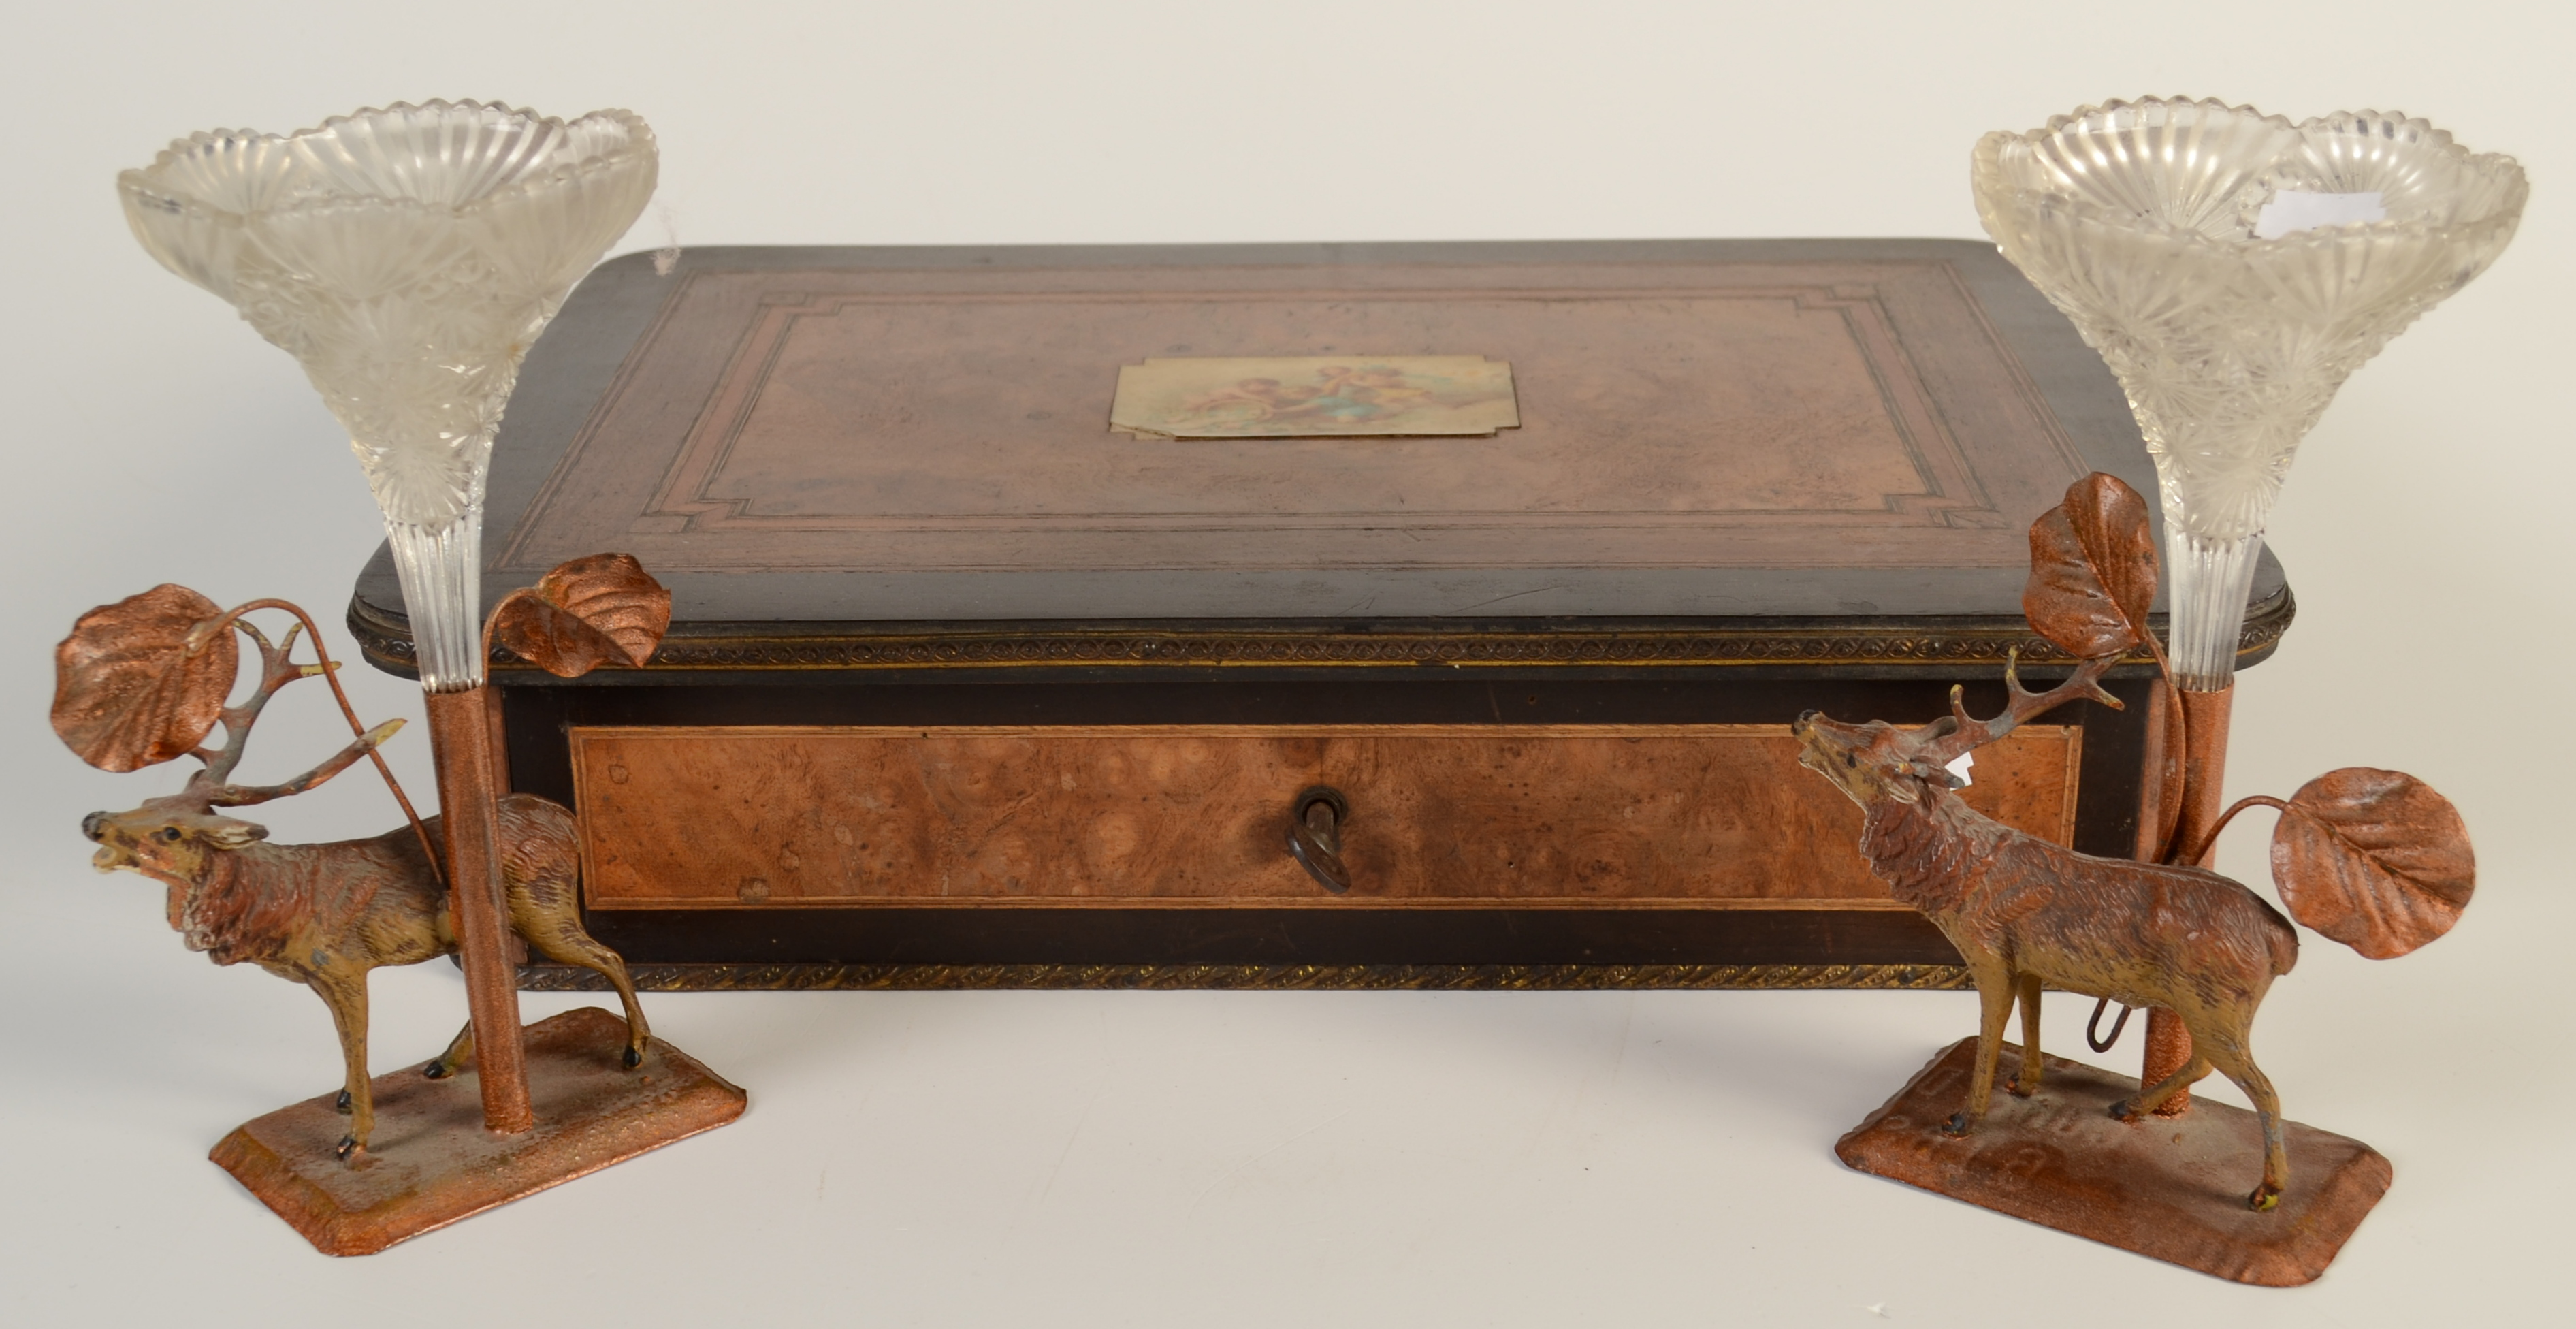 Lot 33 - A French inlaid walnut and ebony work box, the lid set with a print of children with a cornucopia,